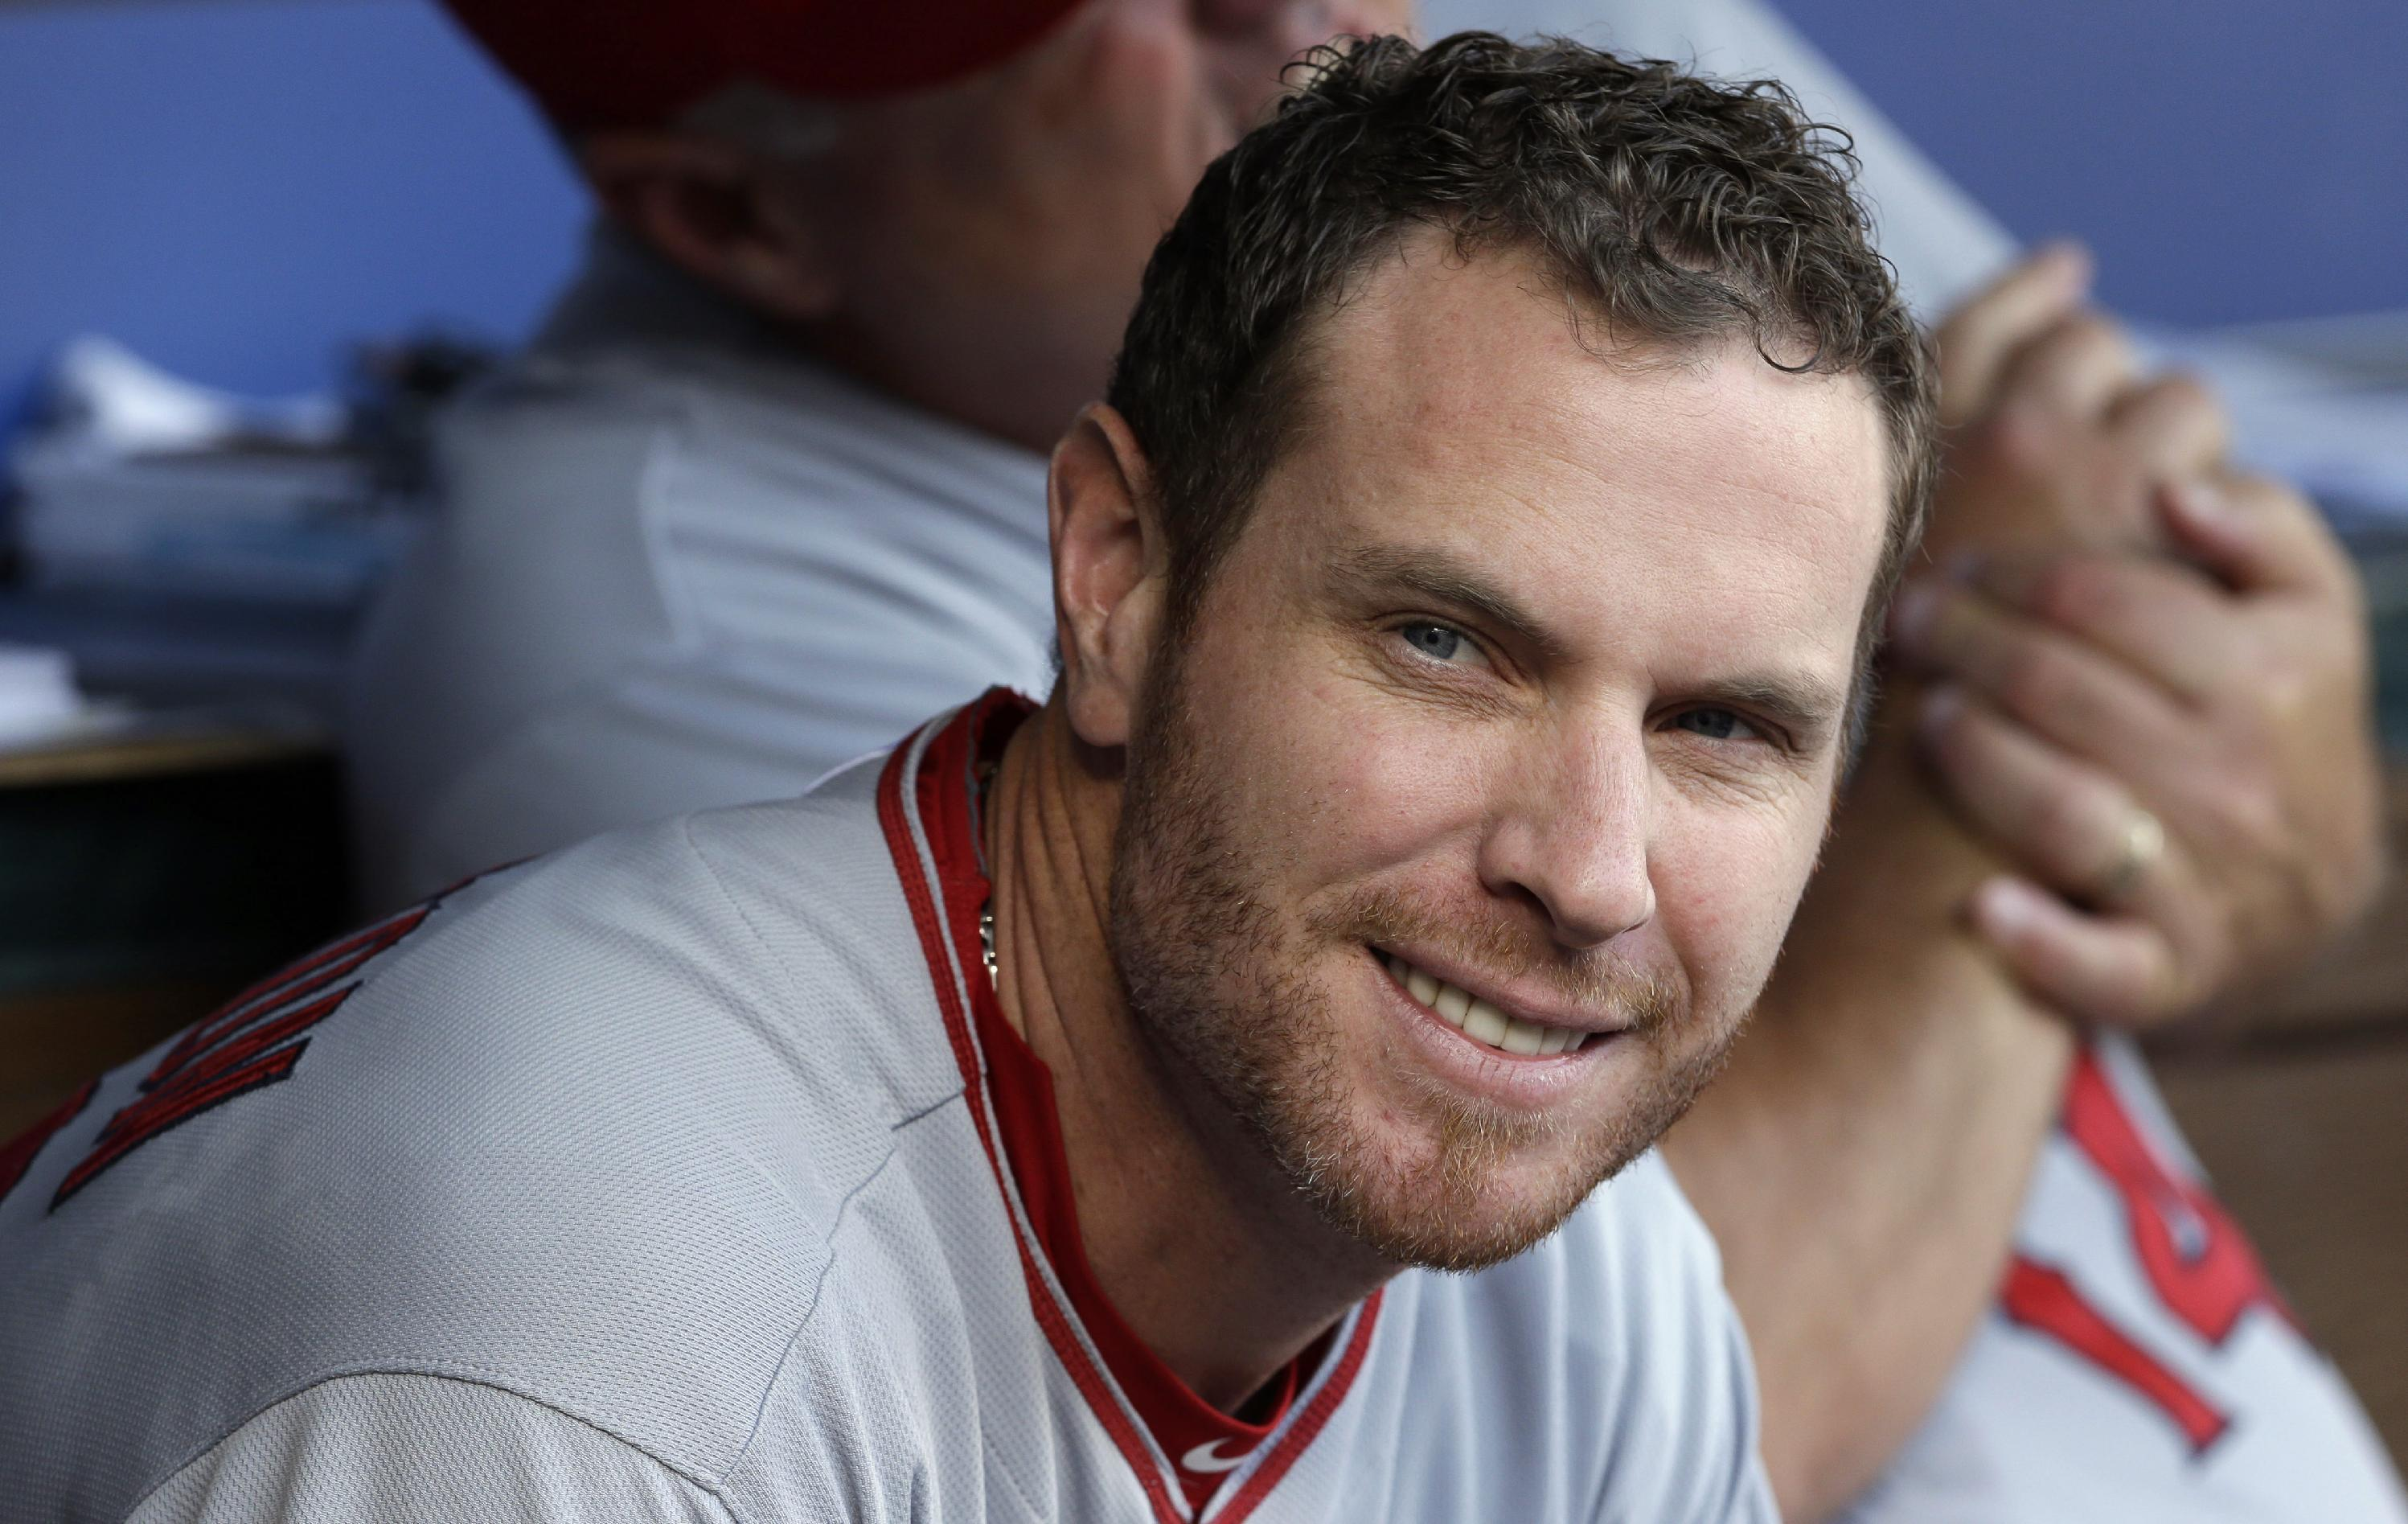 Report: Josh Hamilton could be back in June under Angels' plan